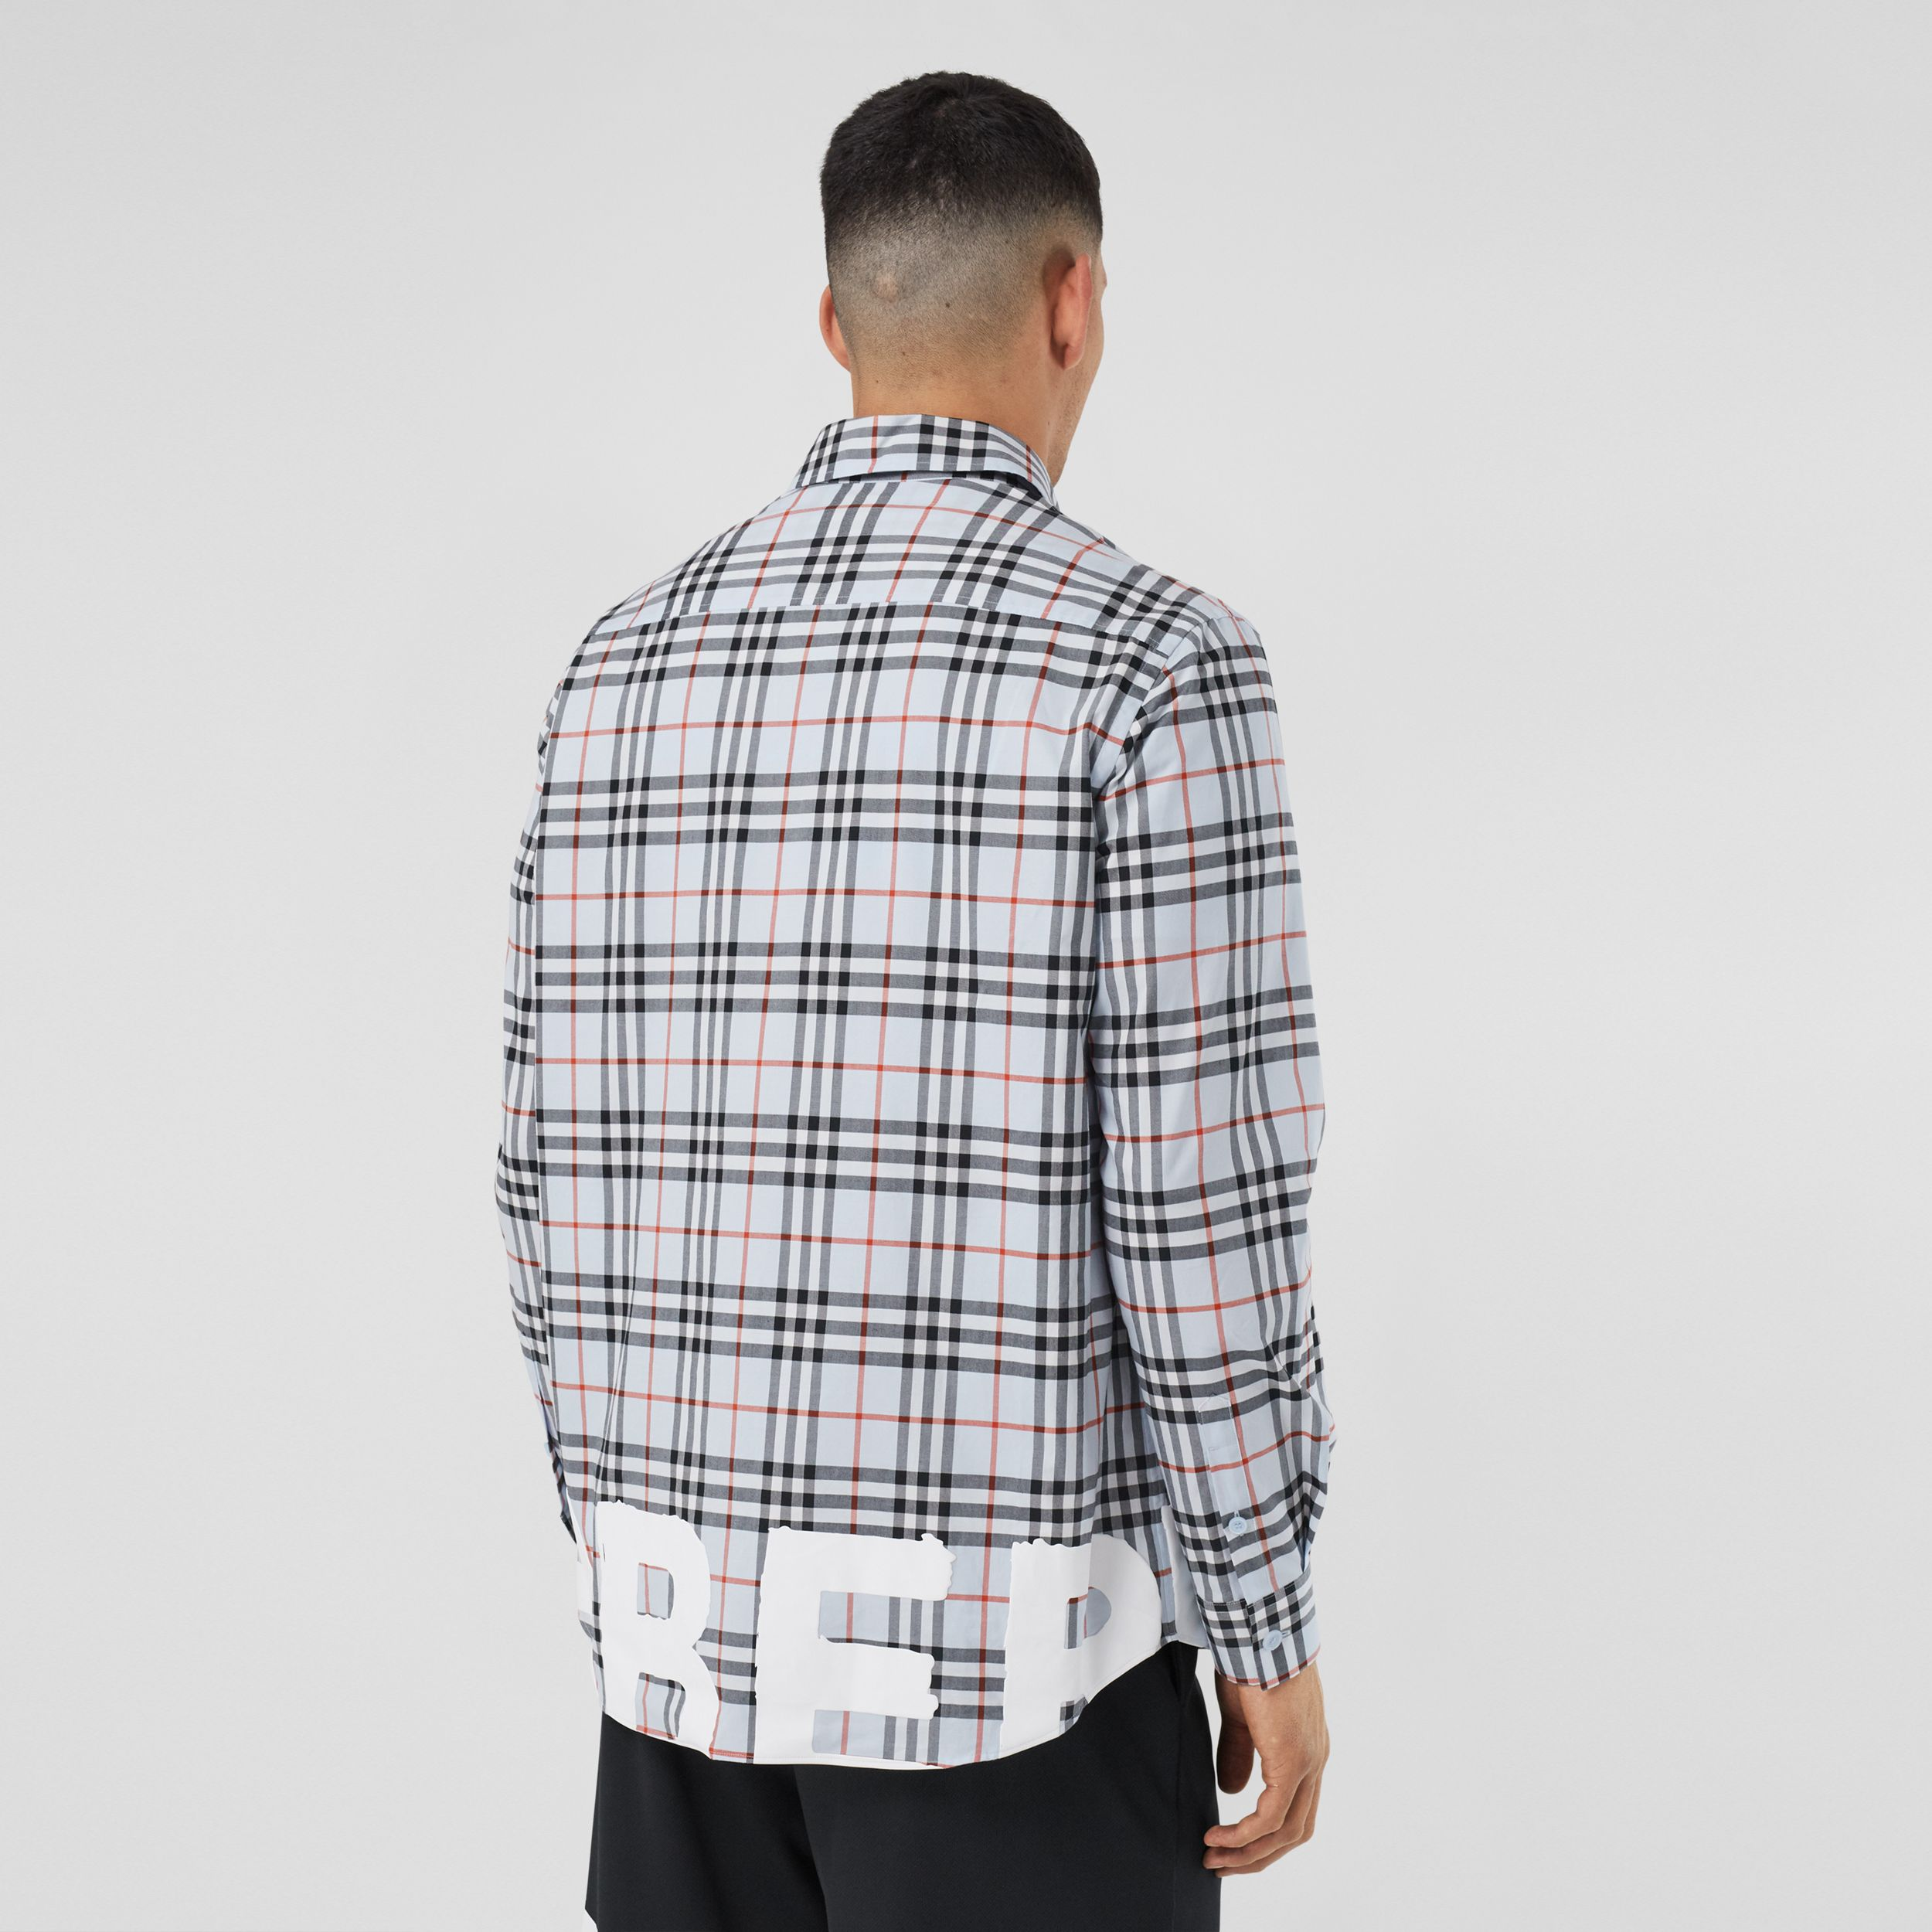 Logo Print Vintage Check Cotton Oversized Shirt – Online Exclusive in Pale Blue - Men | Burberry - 3